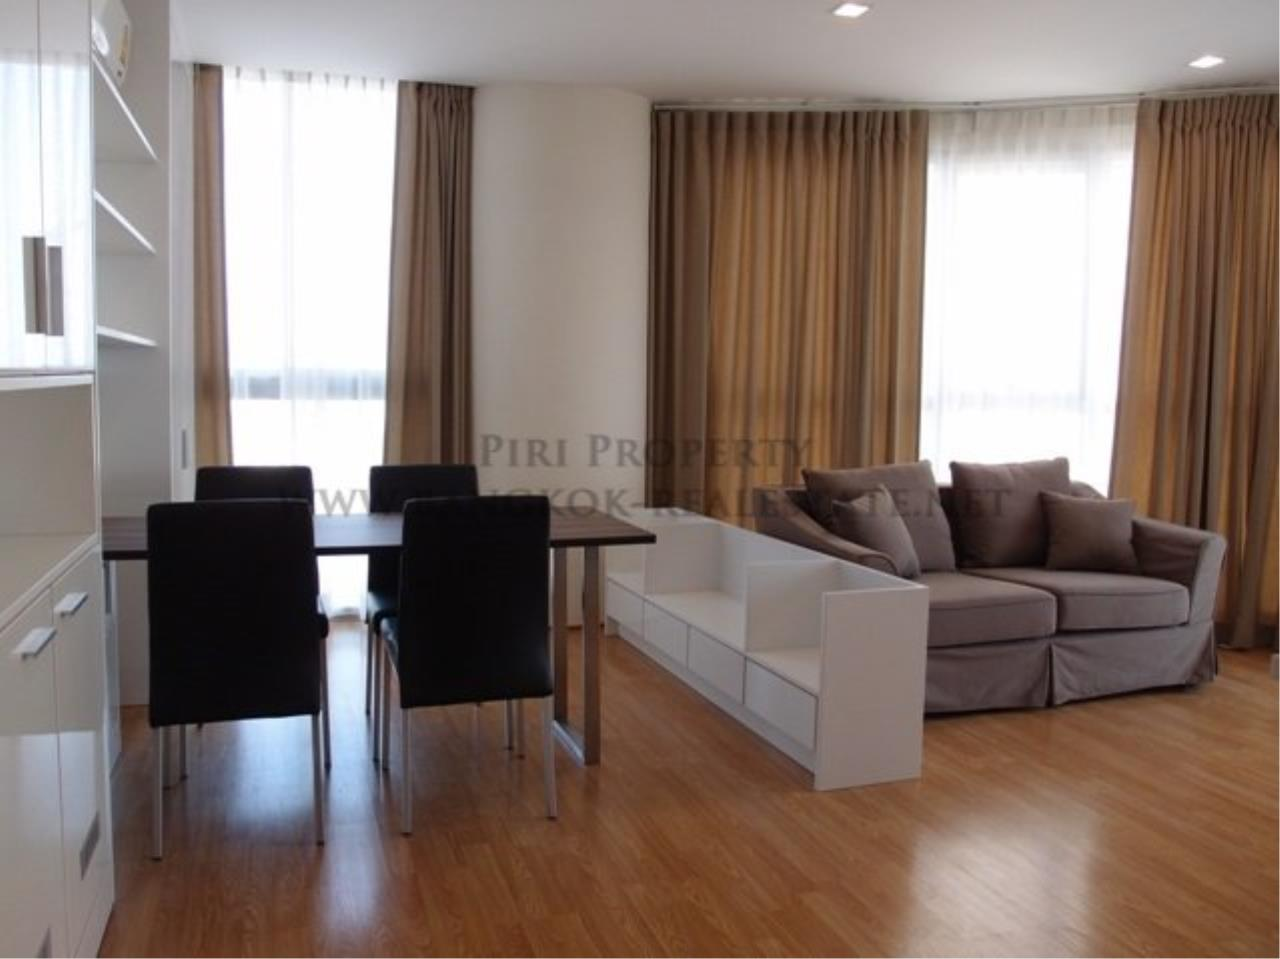 Piri Property Agency's Le Luk Condo - Fully furnished 1 Bedroom 1